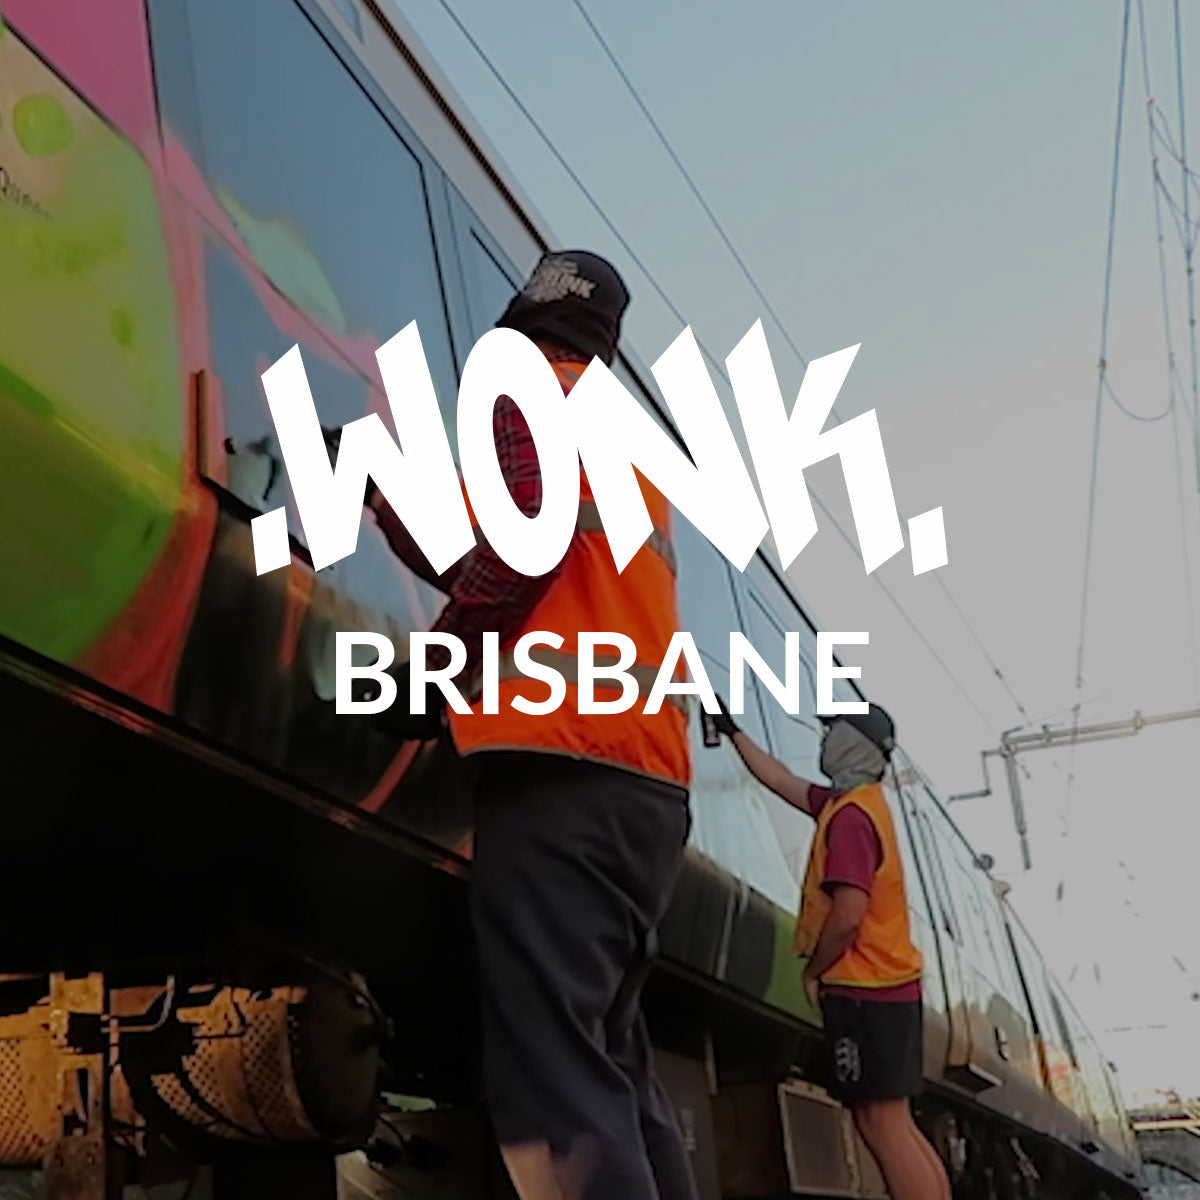 VIDEO - WONK BRISBANE